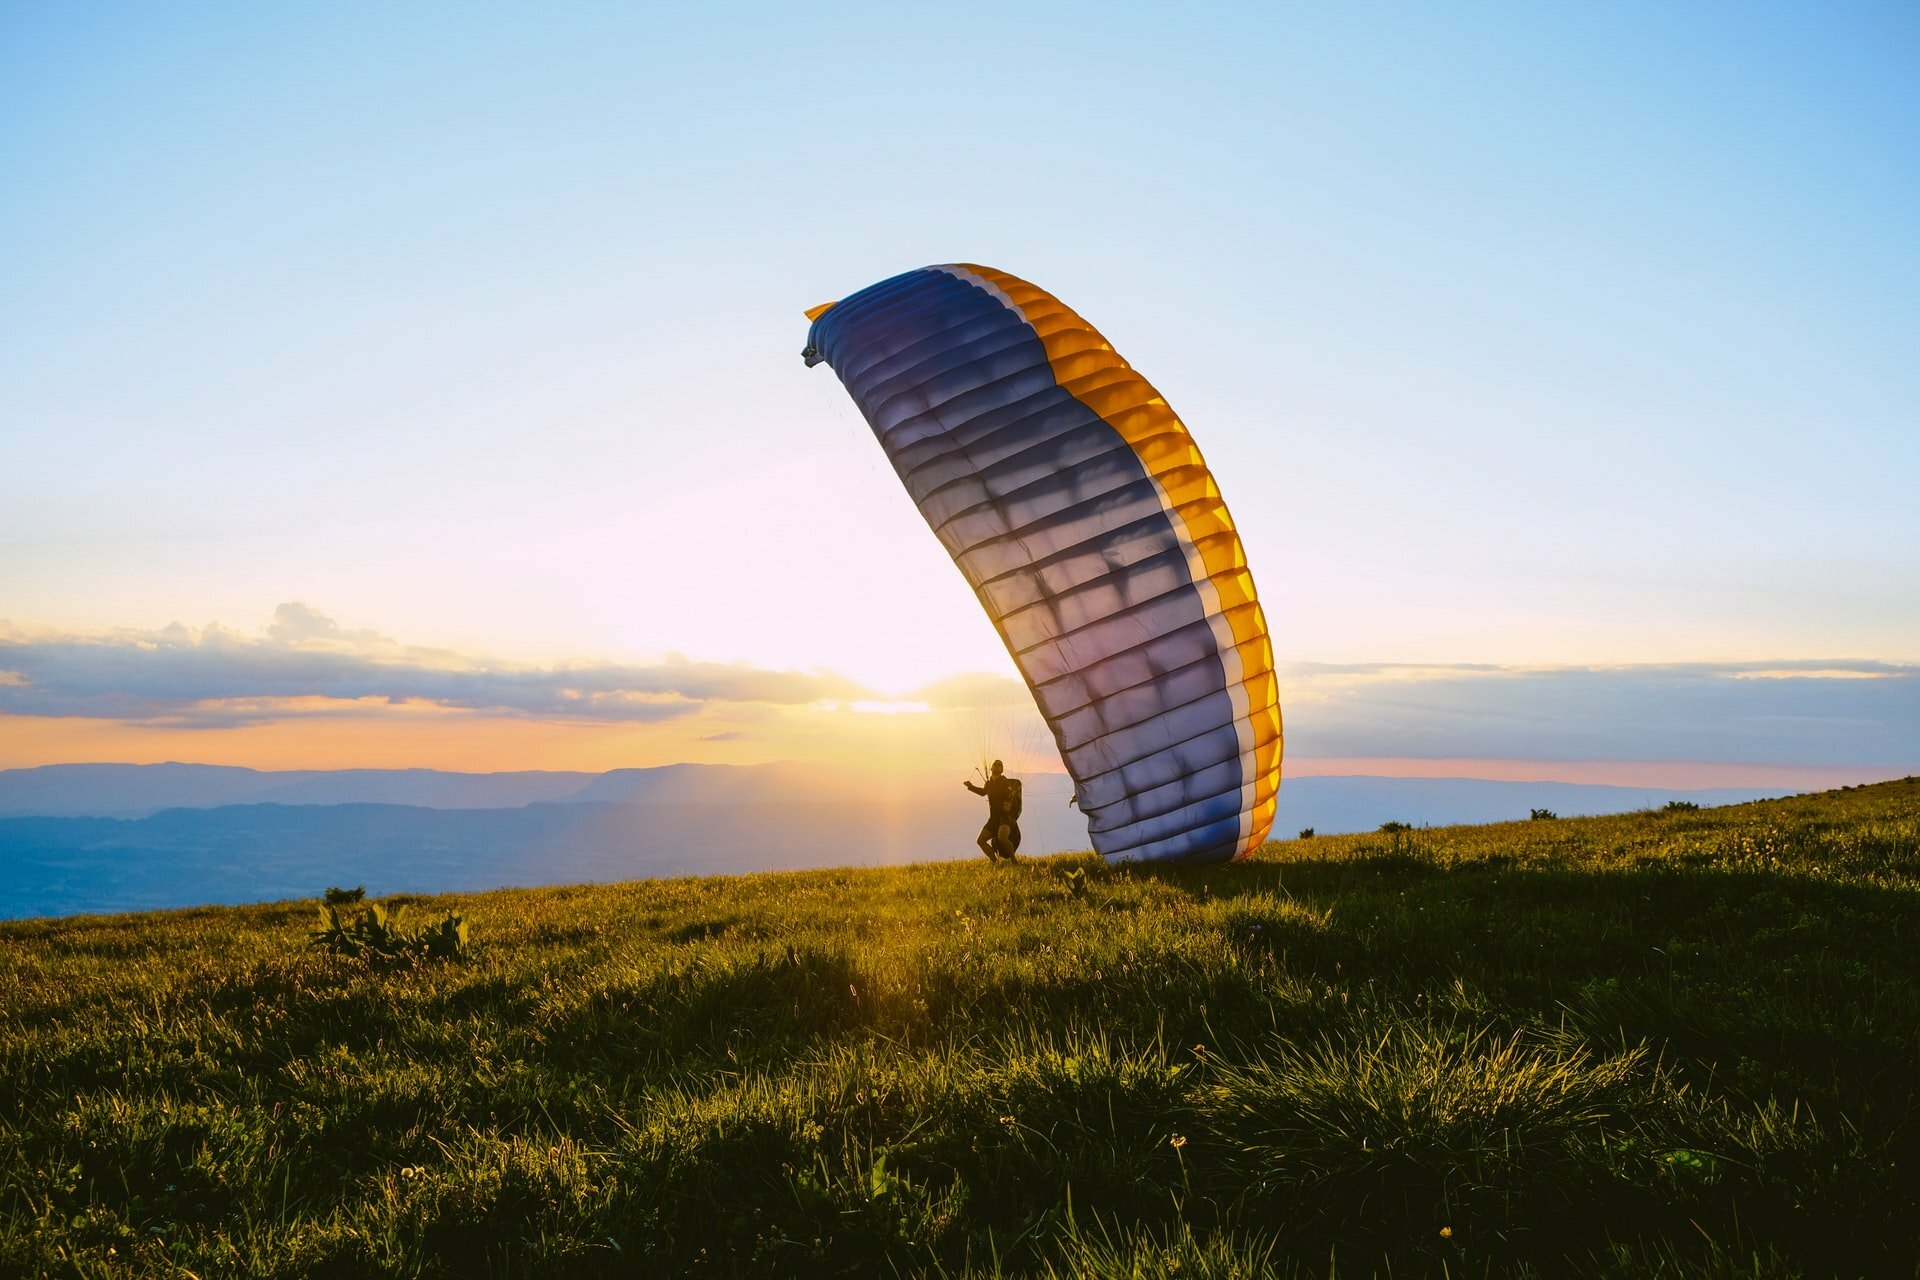 How do you learn to fly paragliding?